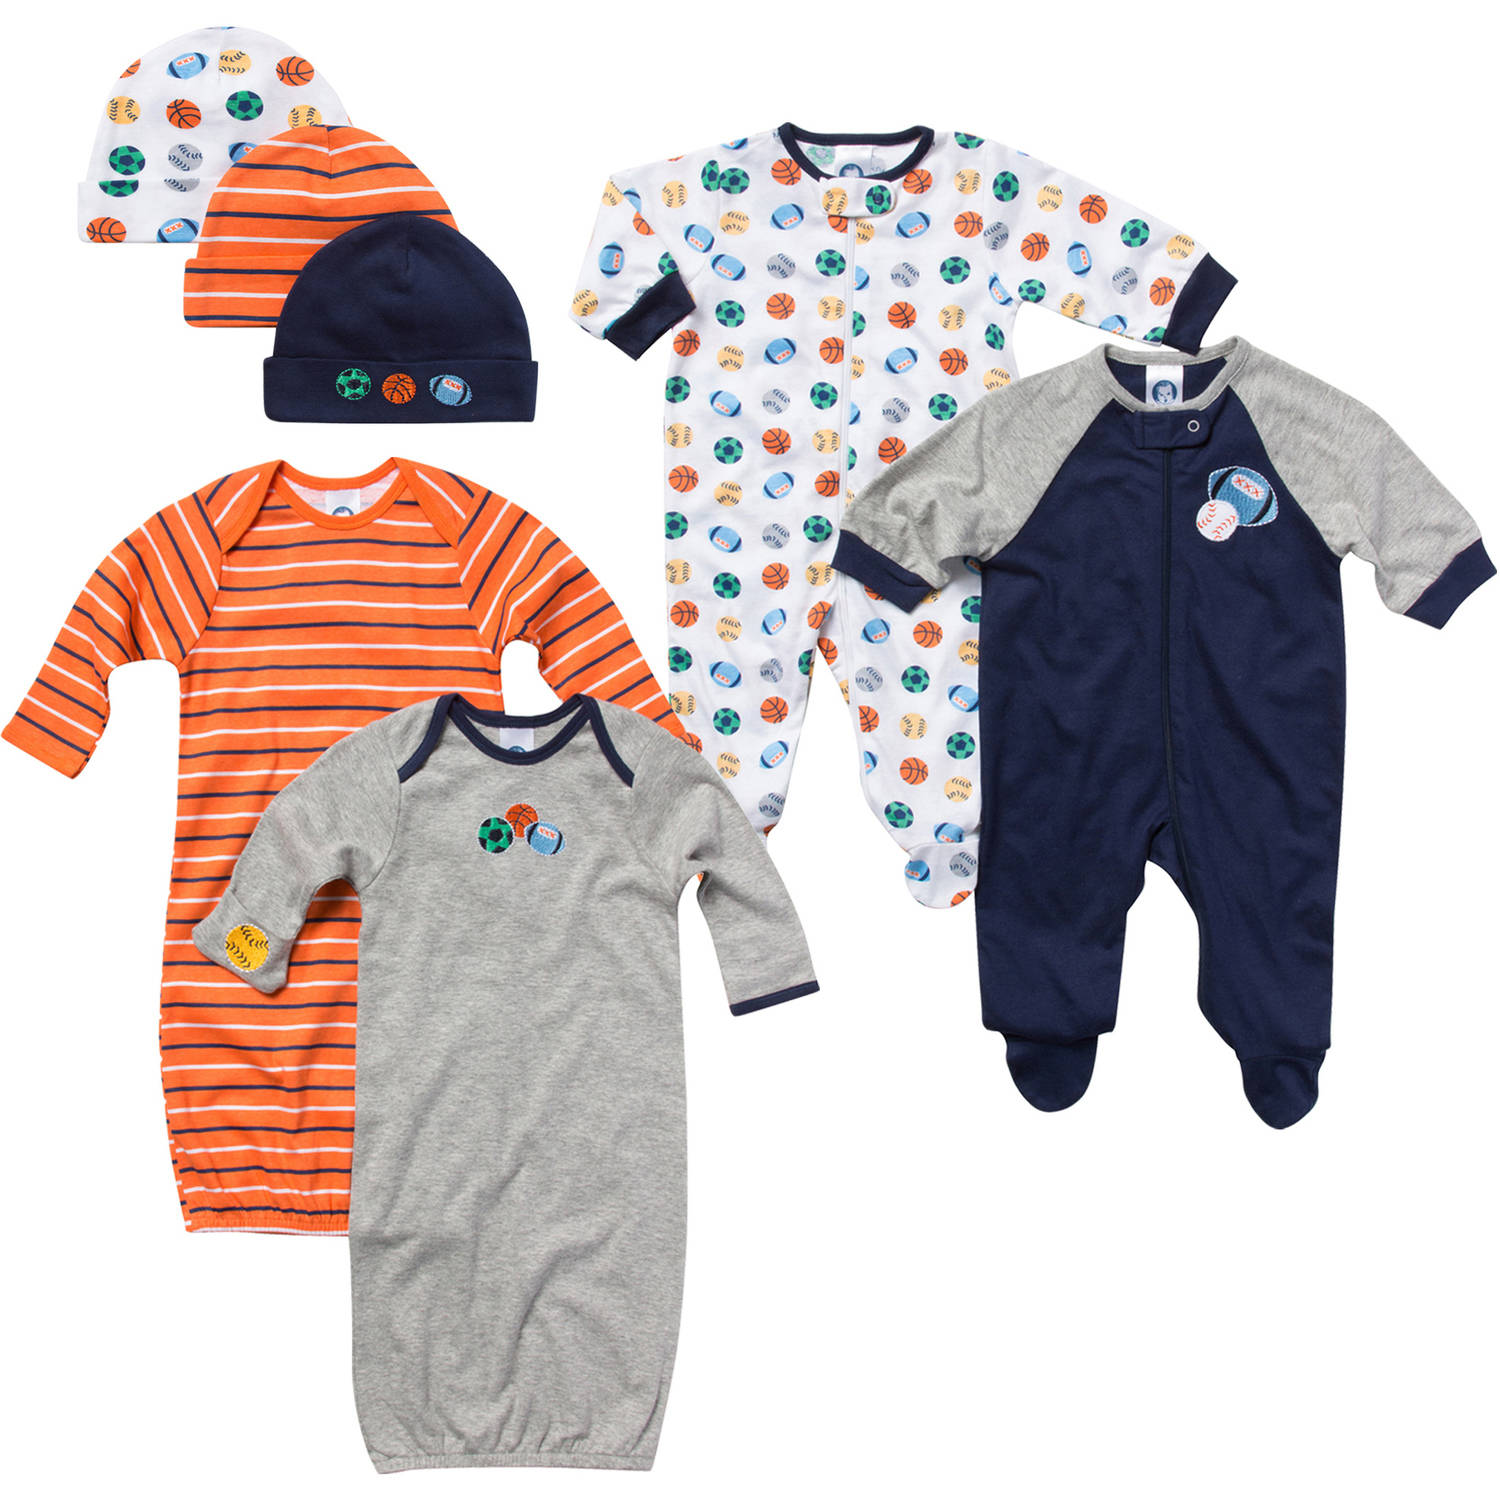 Gerber Newborn Baby Boy Day & Night Gift Set,  7-Piece